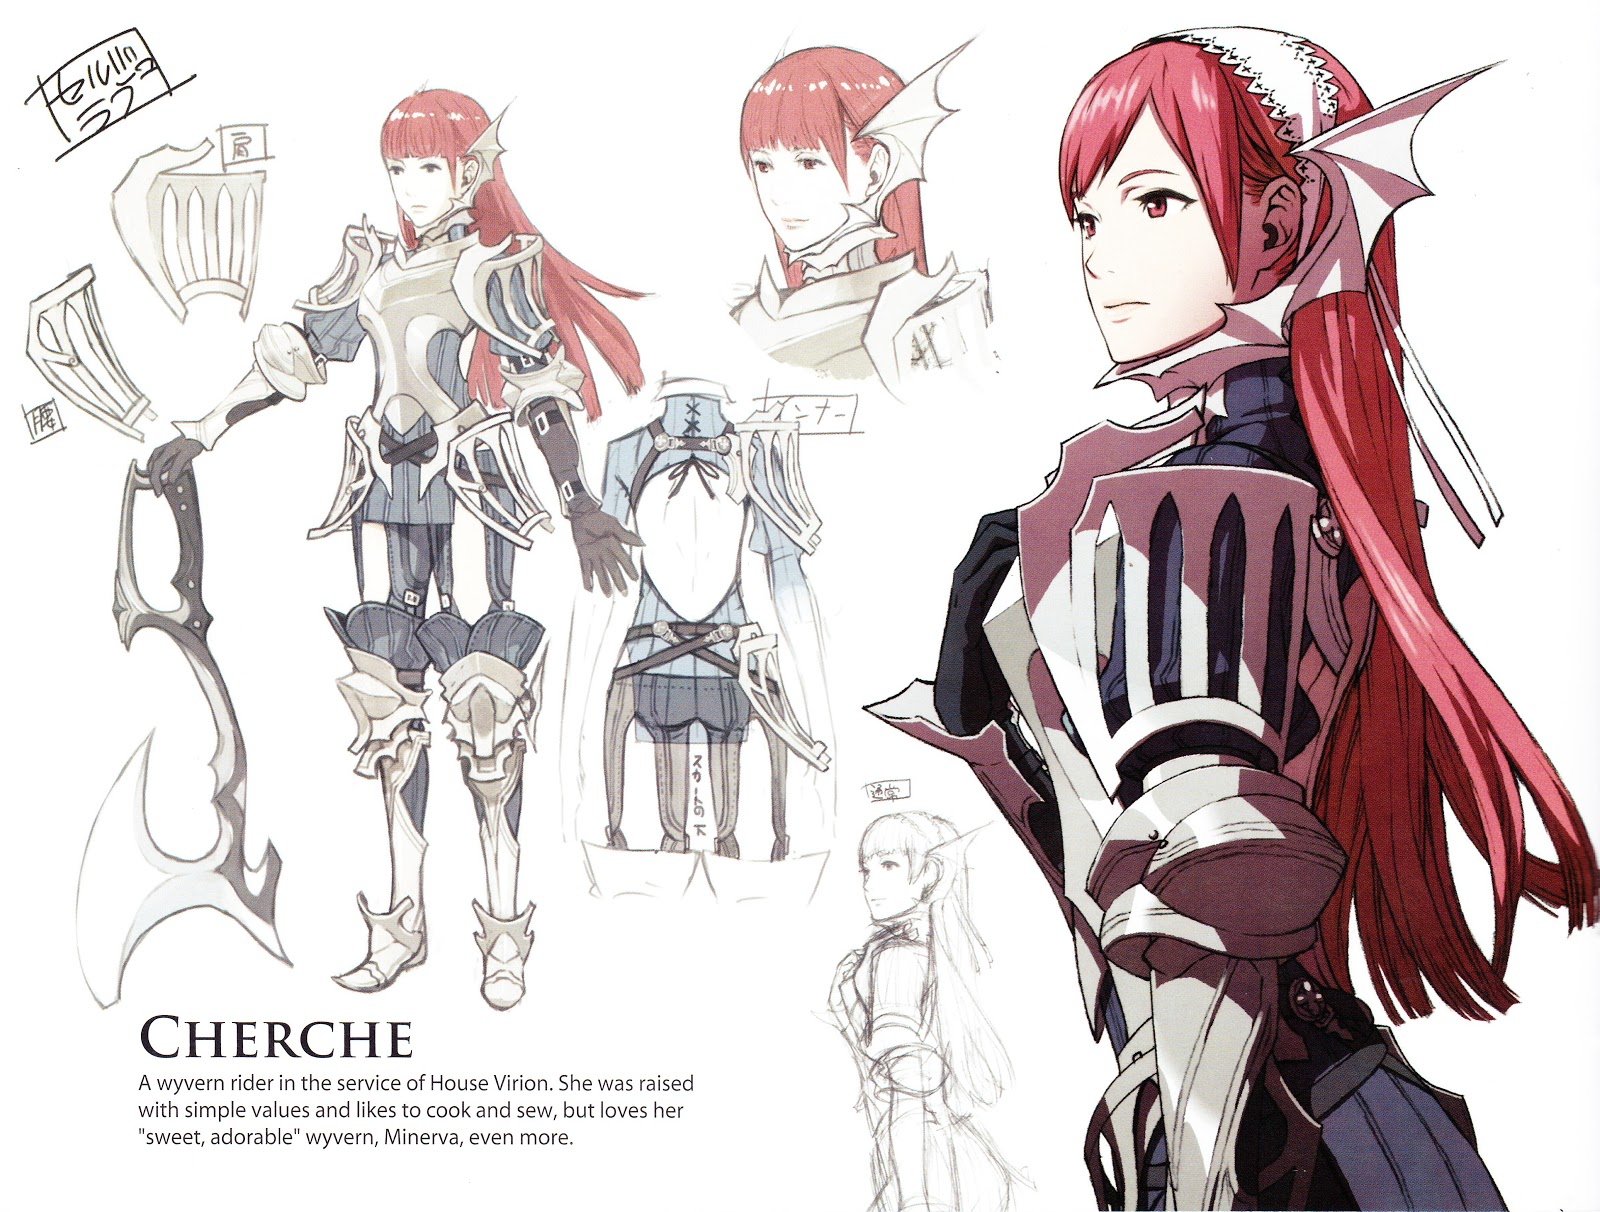 fire emblem official art: